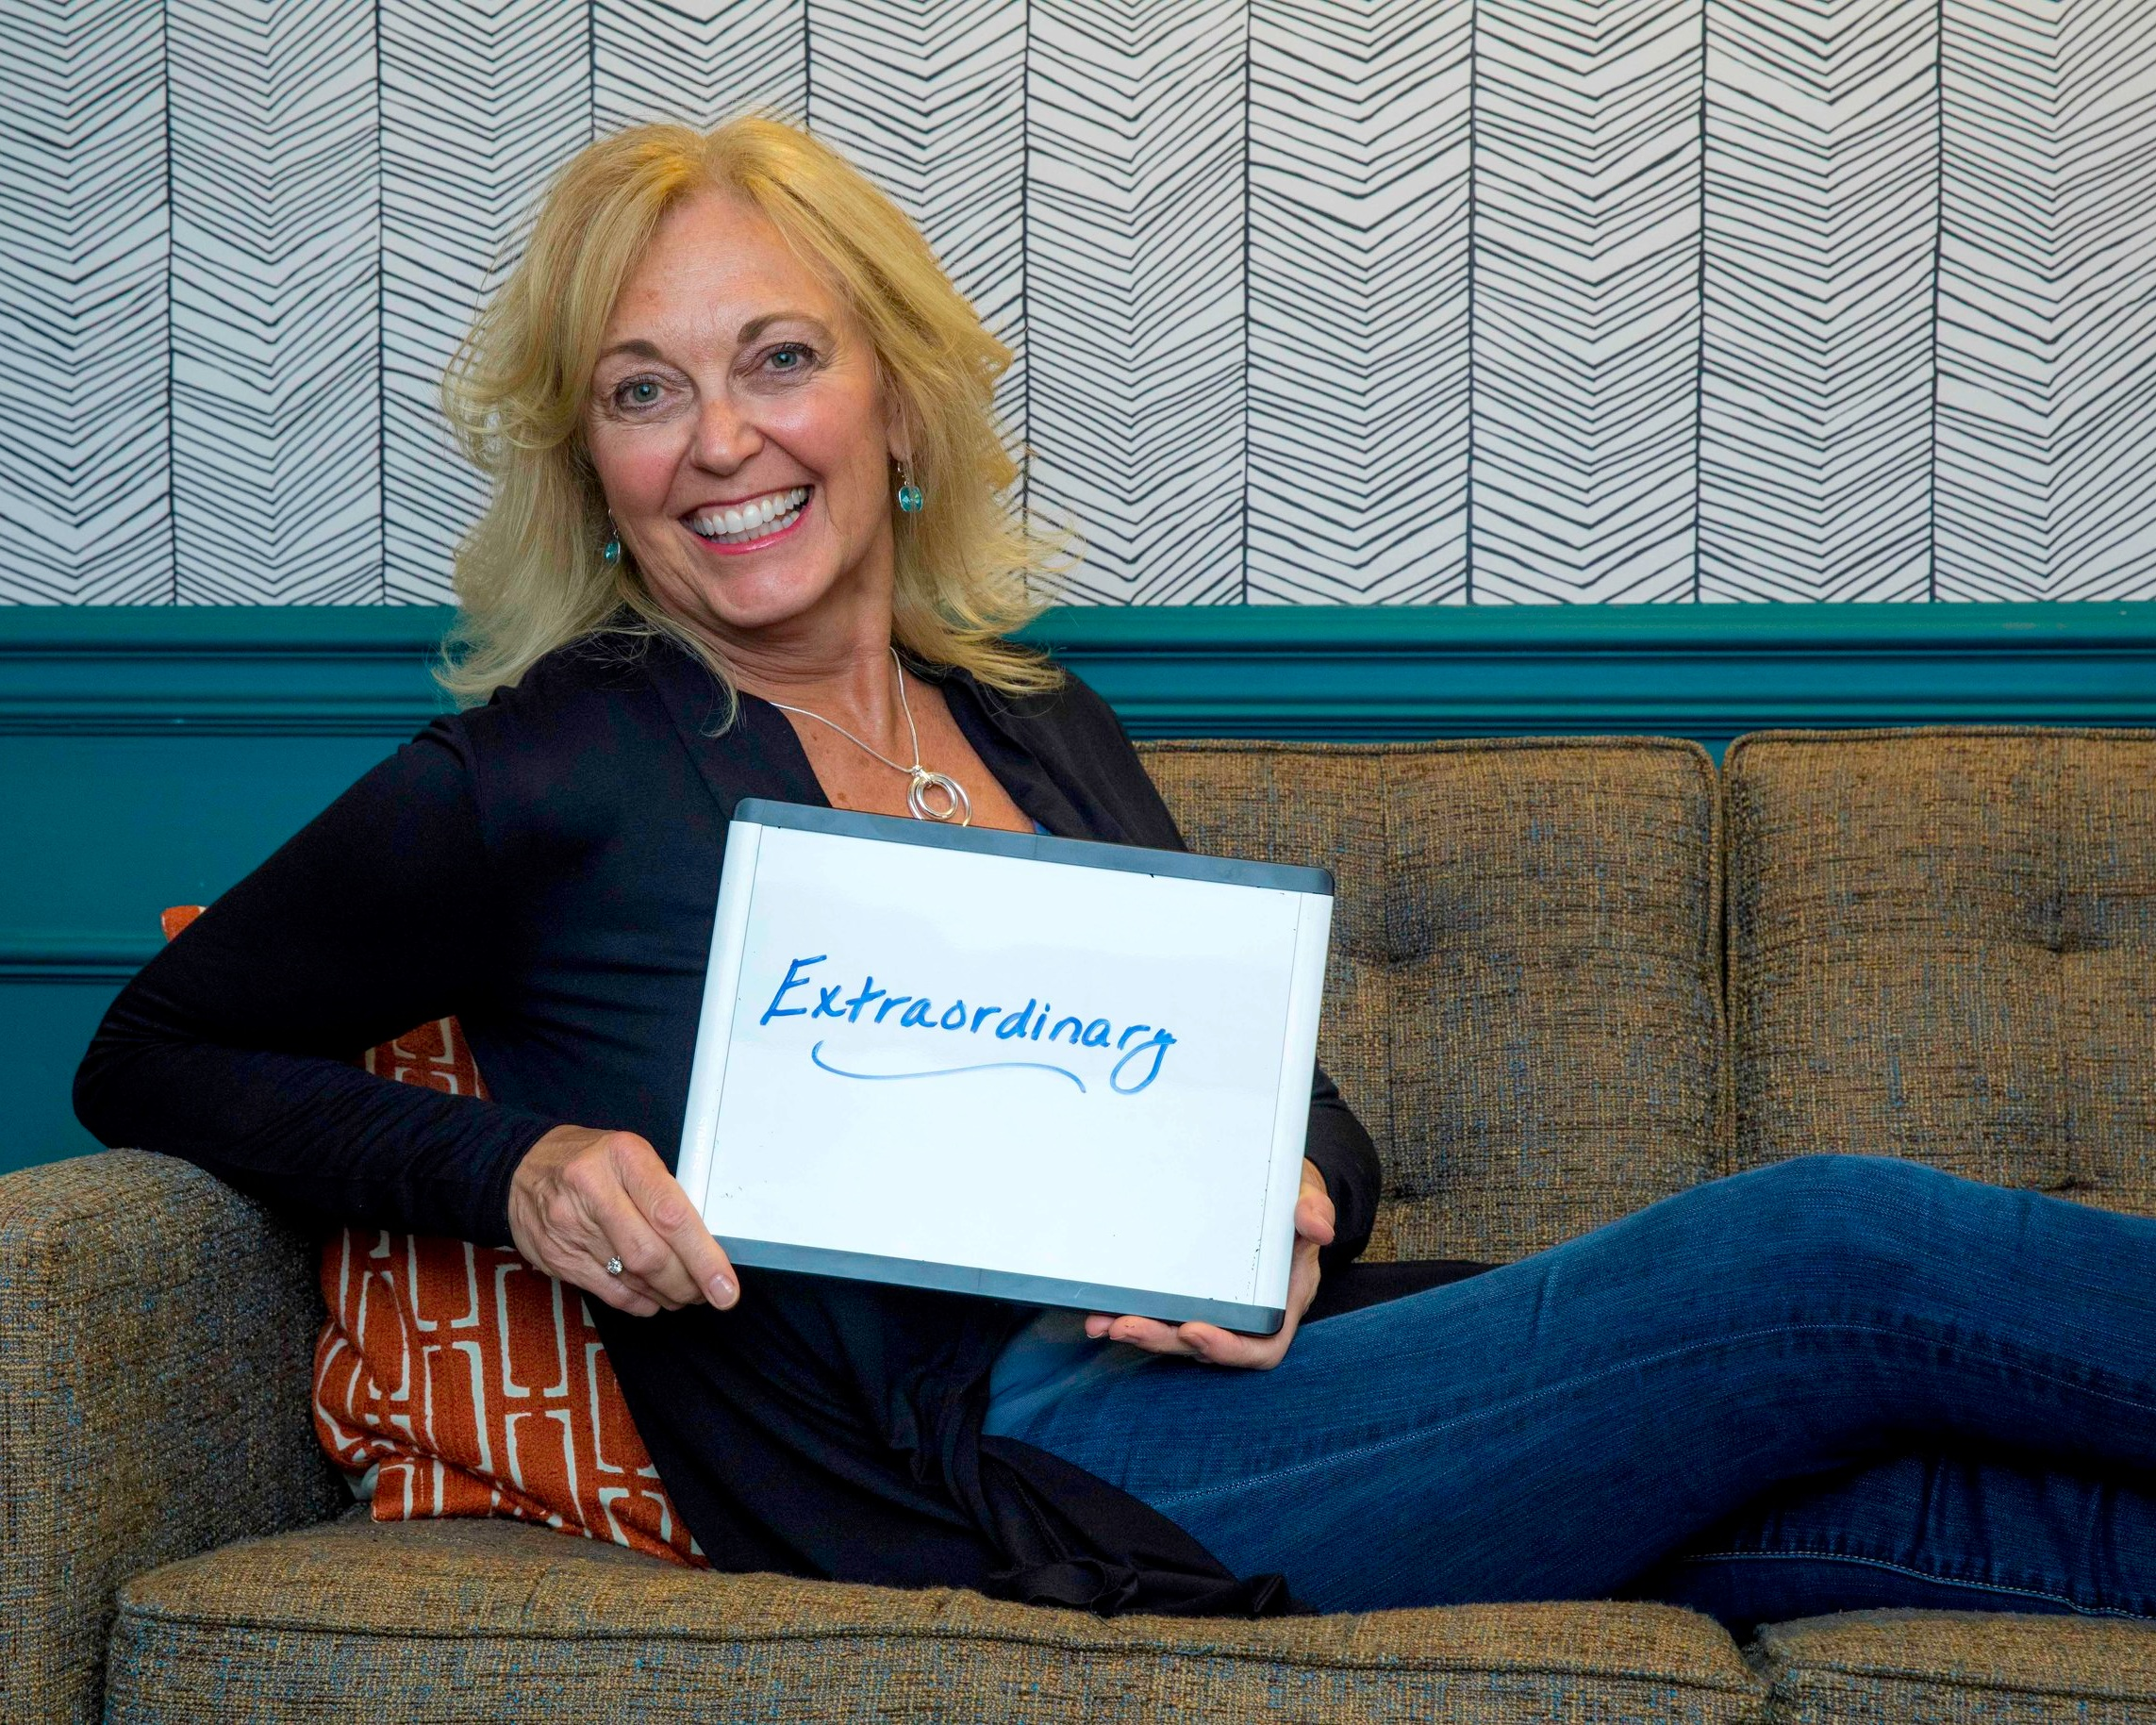 Maureen - Maureen's extraordinary lounging on the couch abilities are nothing compared to her ability to grow a business. As VP of Client Engagement, she creates winning talent solutions for some of our largest clients. Can we get you a pillow, Maureen? A cocktail?